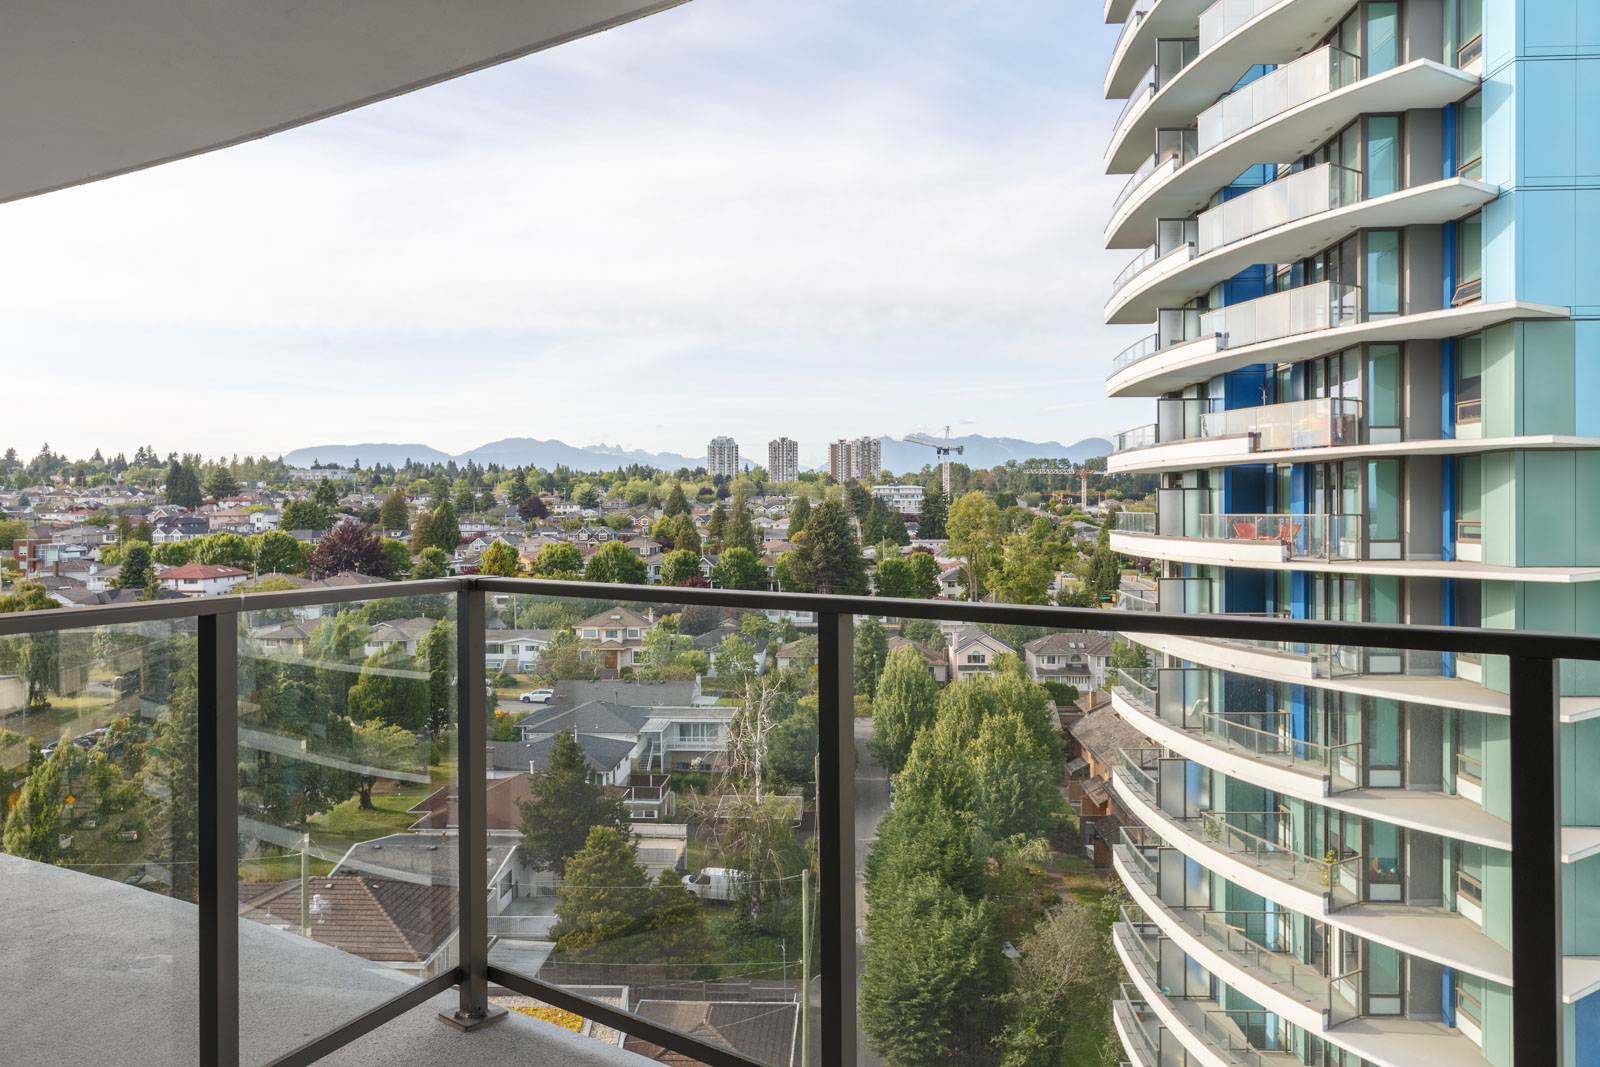 Private balcony of luxury Vancouver rental condo with view.